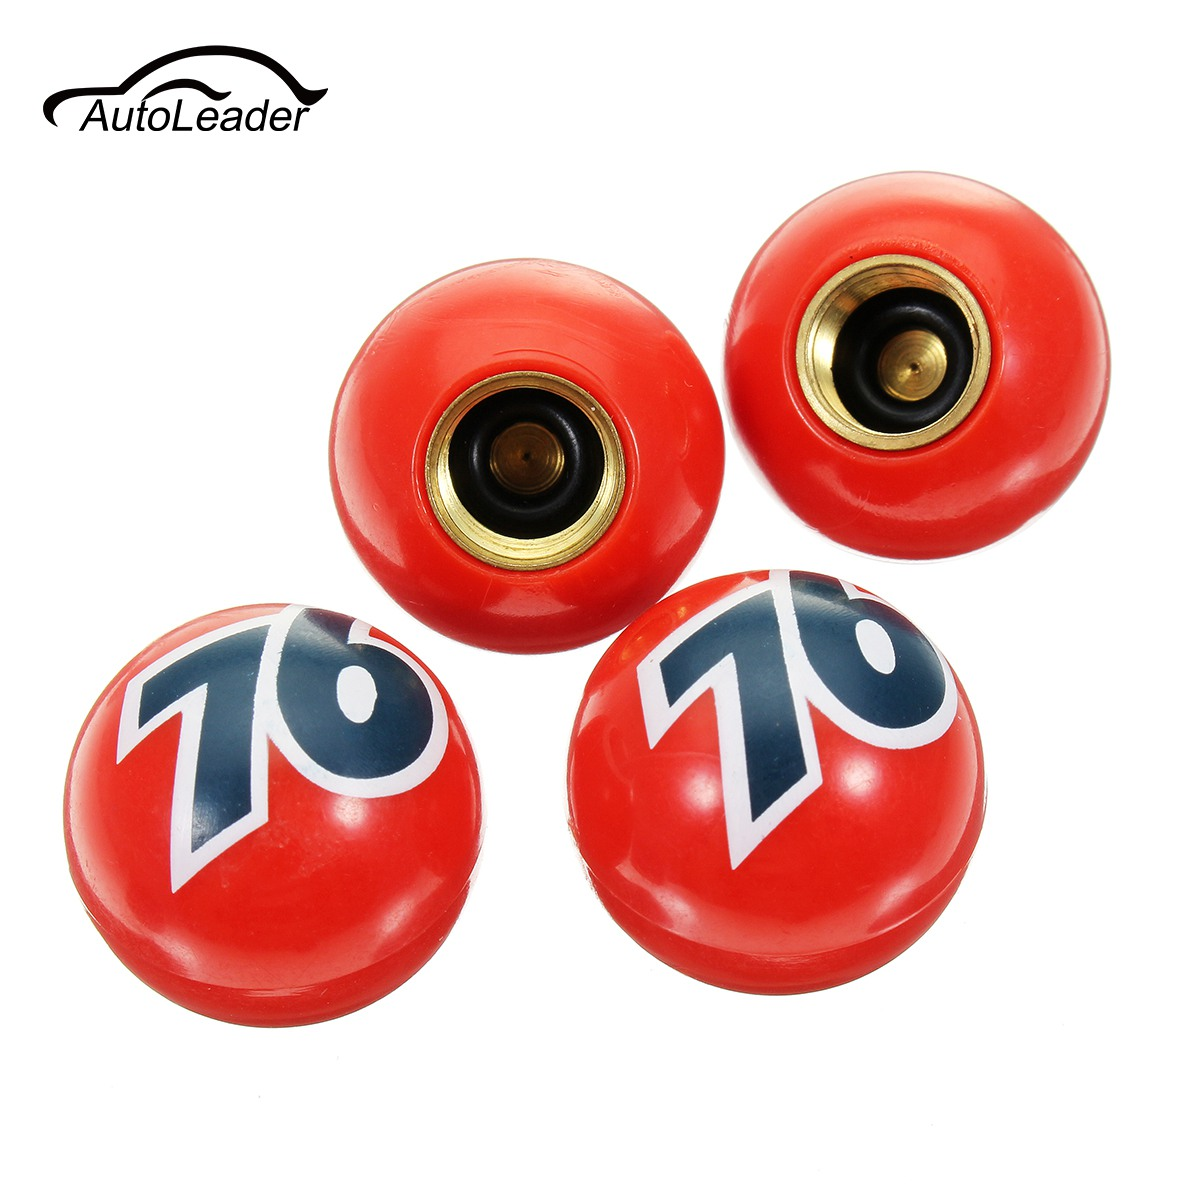 4Pcs Car Bike Tyre Tire Air Valve Stem Dust Caps Universal Cover For Car Bike Red Number 76 Ball Plastic Sphere